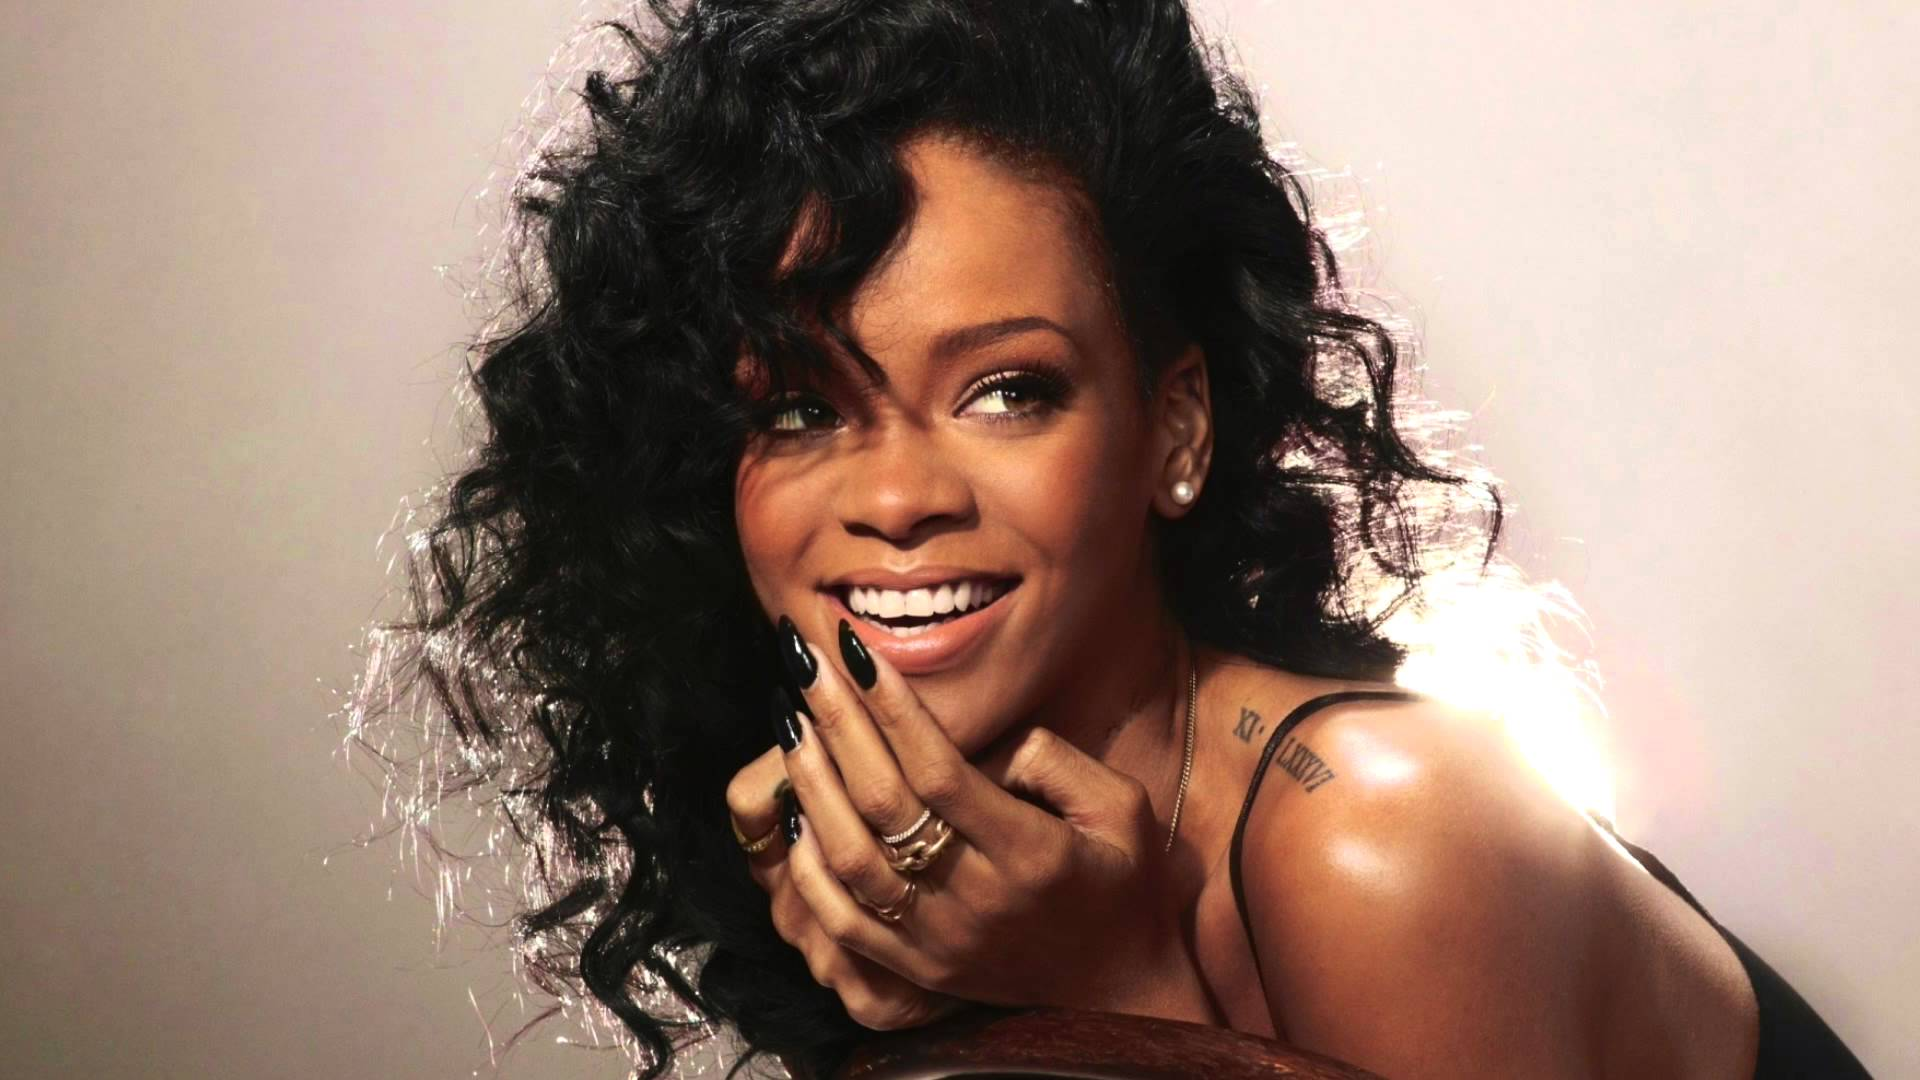 This Video Shows Rihanna Going To Extreme Lengths To Save Her Booze rihanna